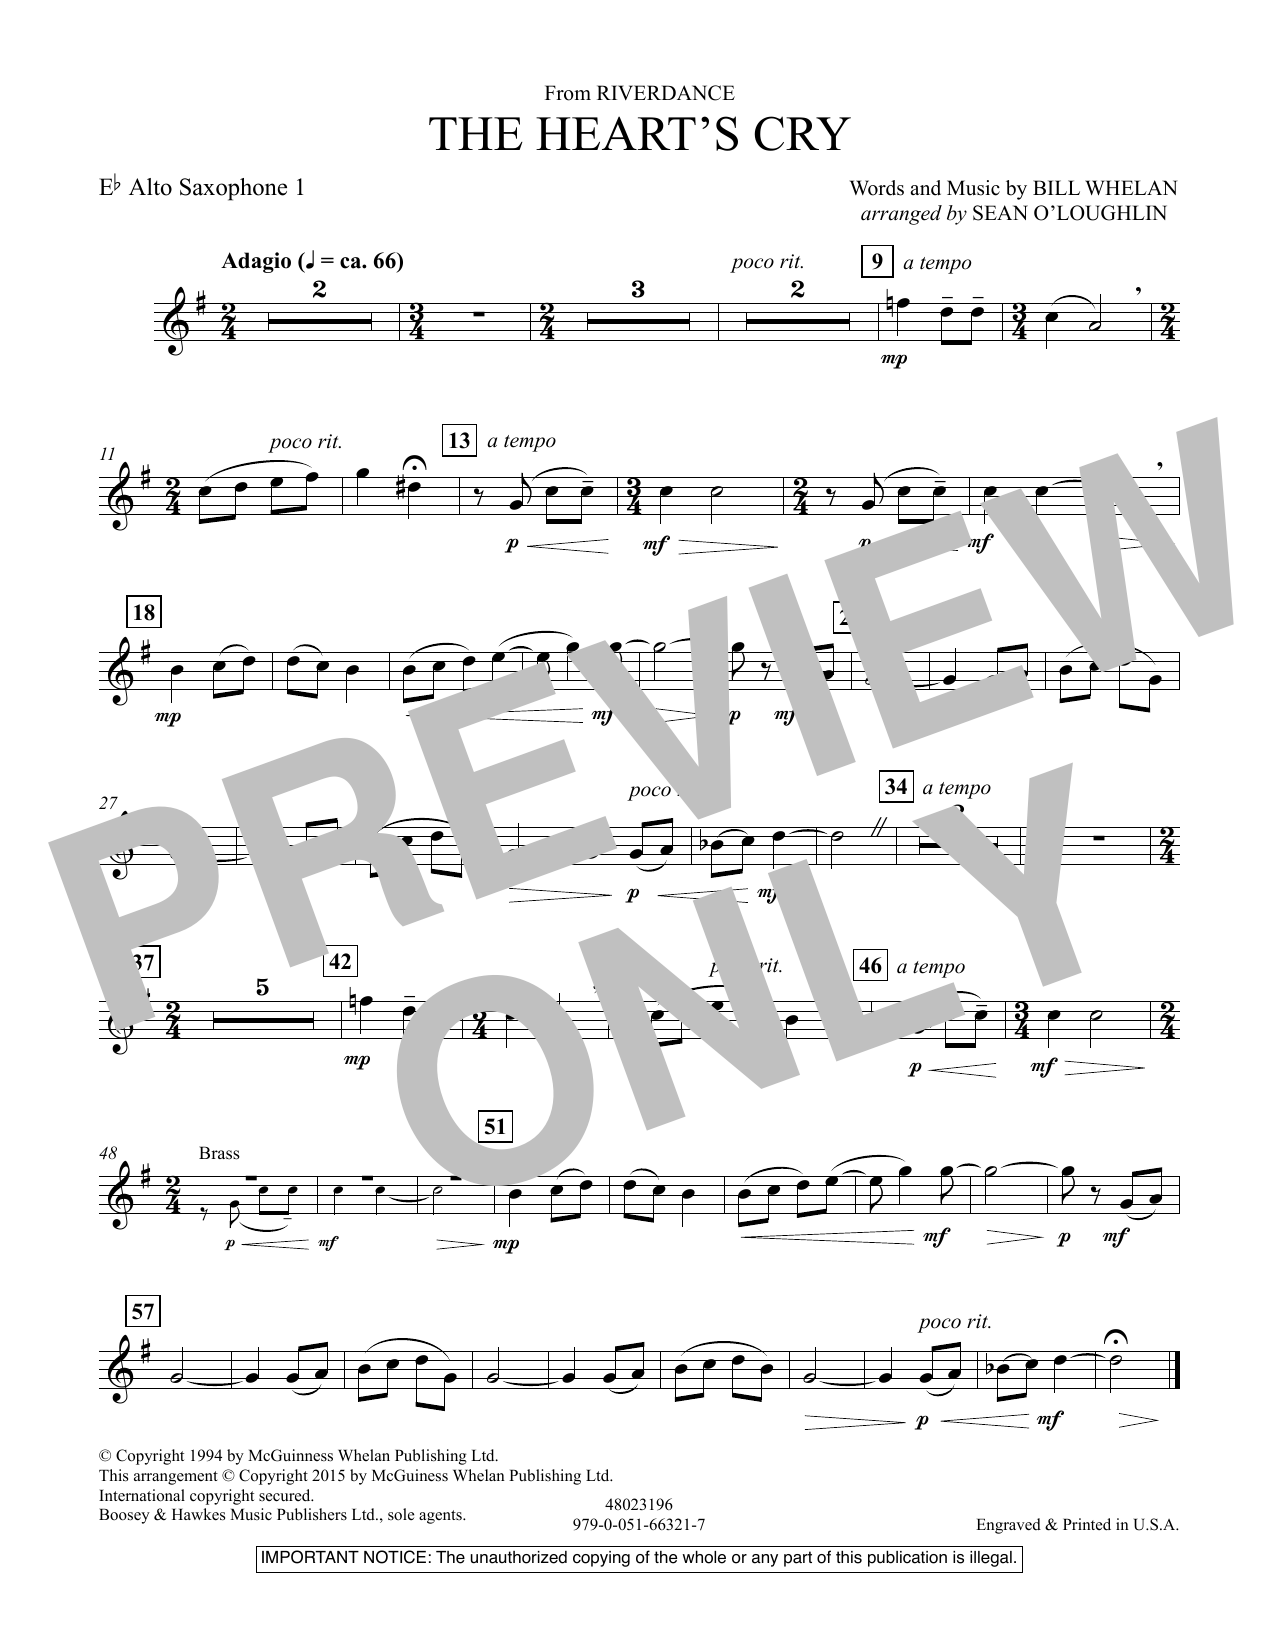 Sean O'Loughlin The Heart's Cry (from Riverdance) - Eb Alto Saxophone 1 sheet music notes and chords. Download Printable PDF.